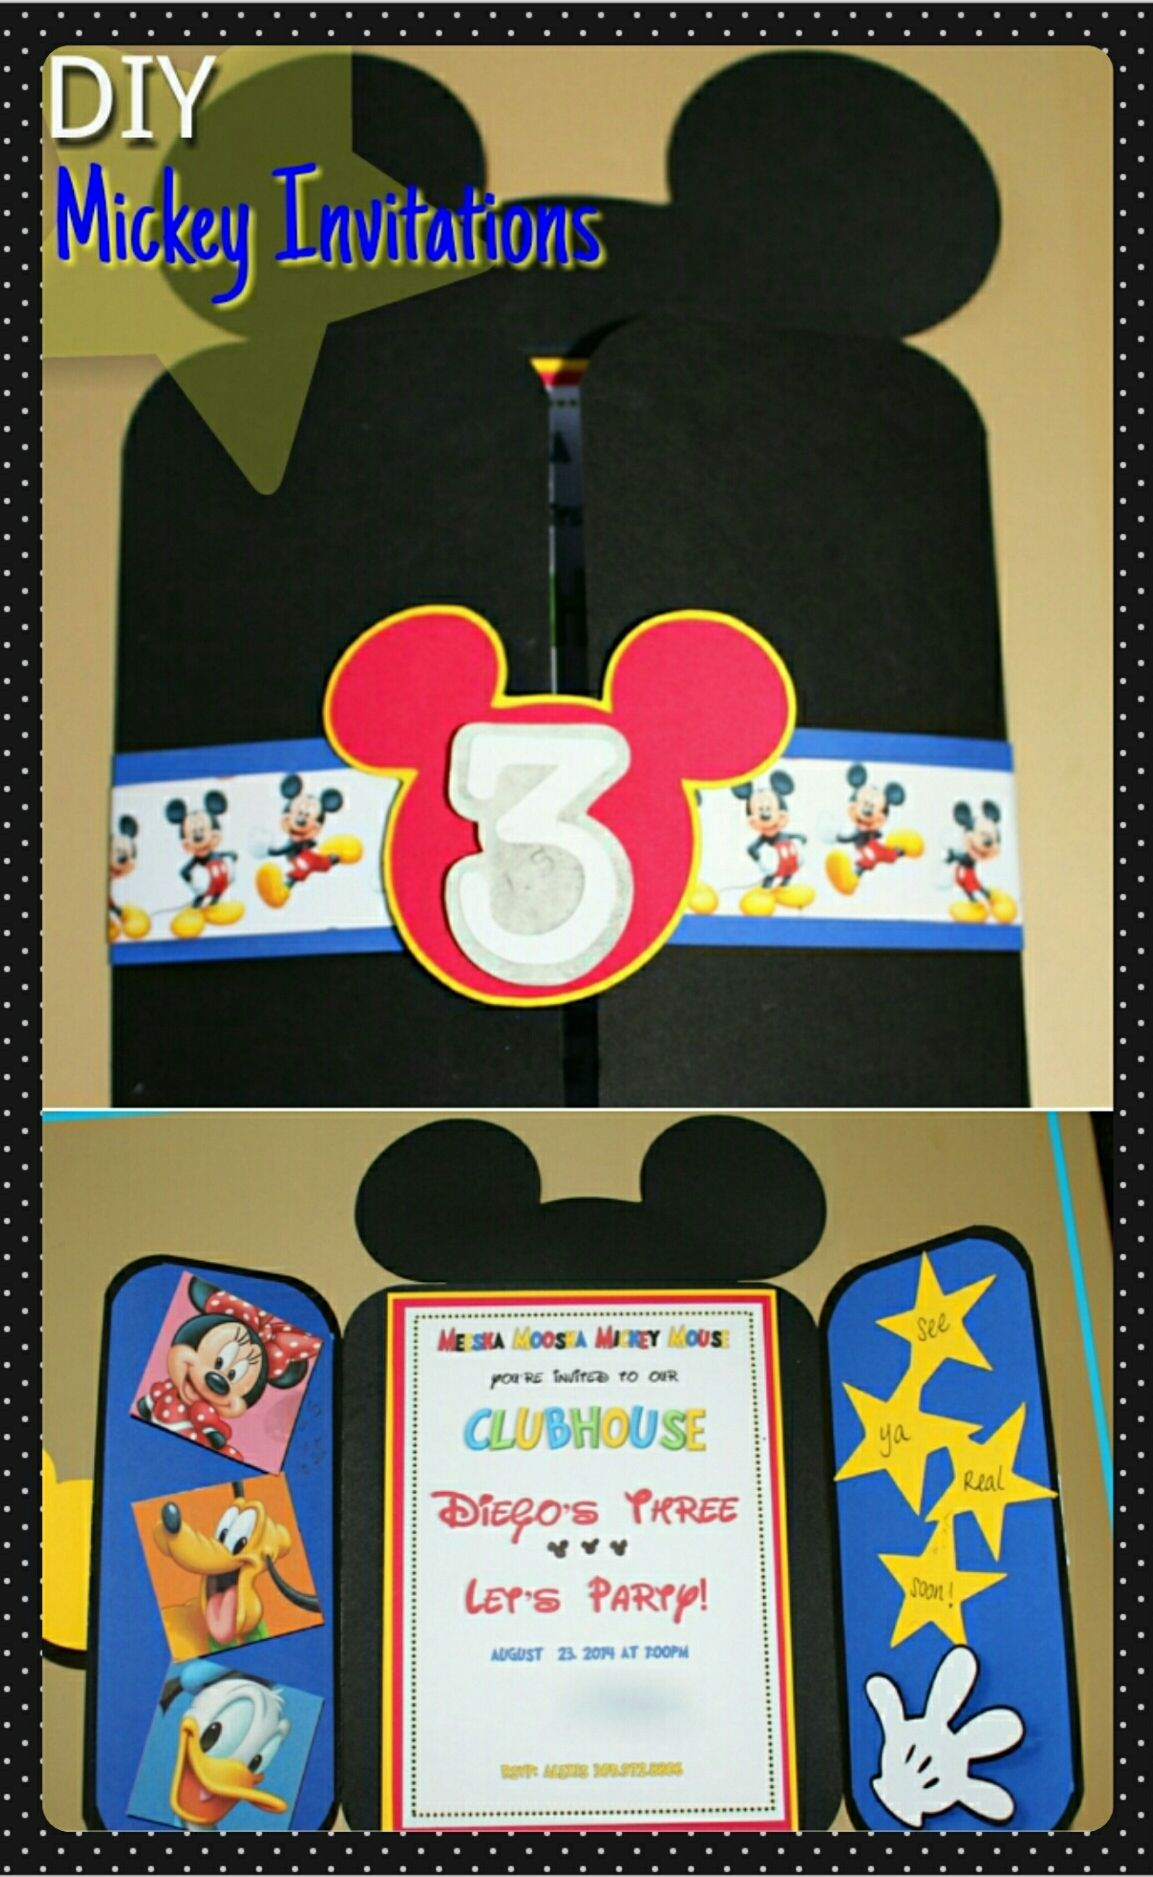 DIY Mickey Invitations | Mickey invitations, Mickey mouse and ...